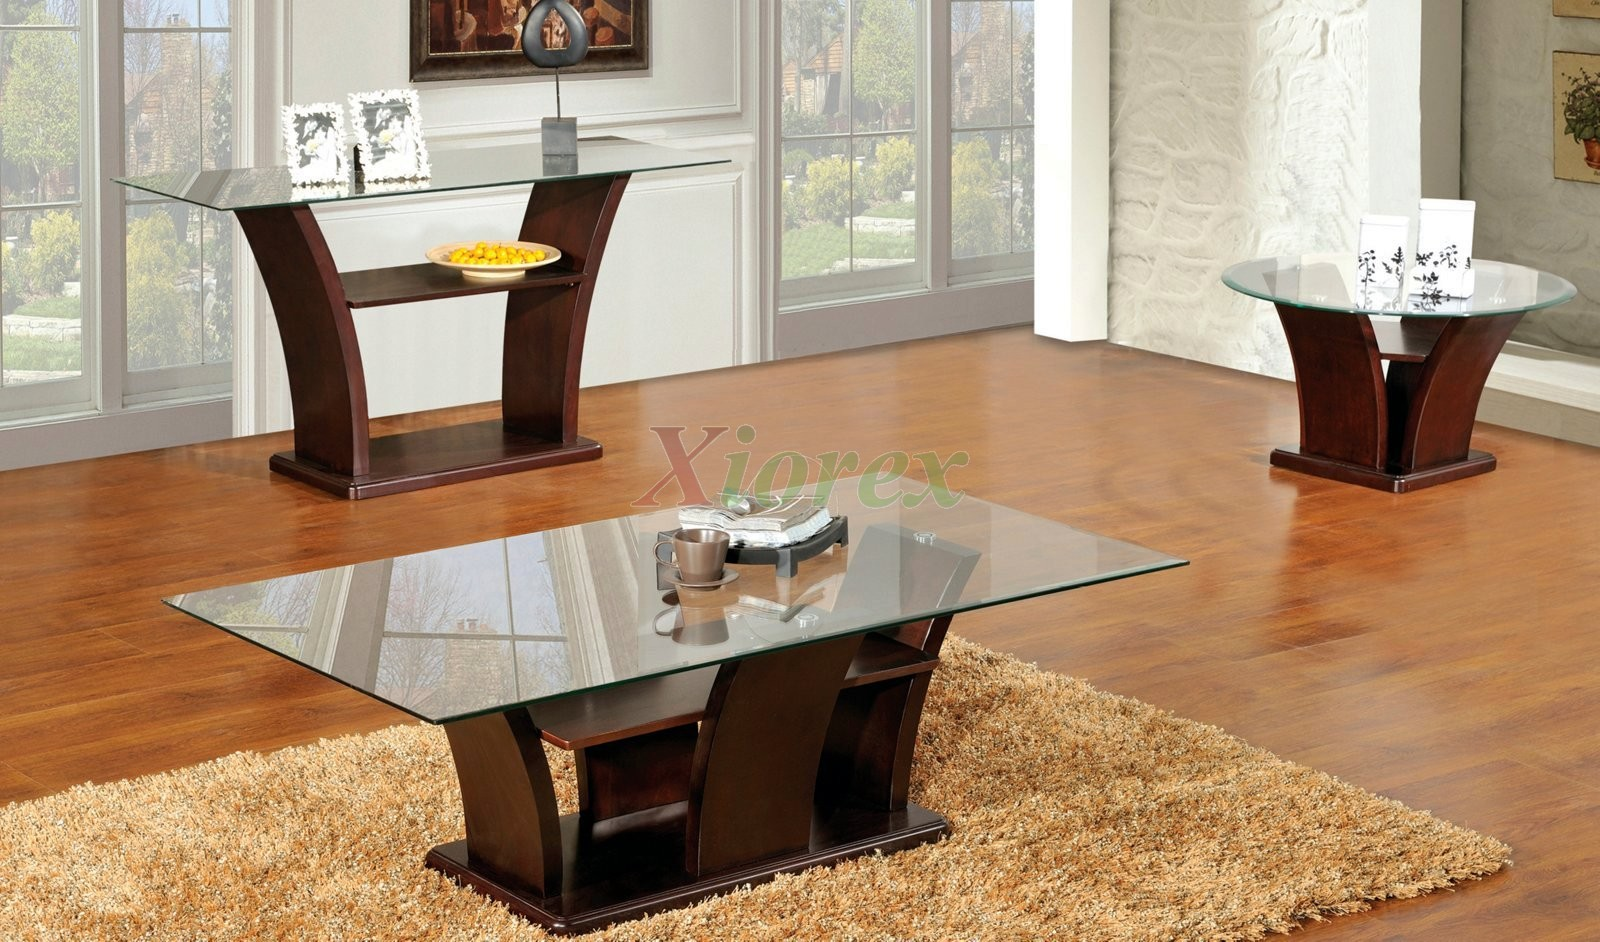 3 Coffee Table Set One Of Popular Living Room Furniture As It Adds A Touch  Of Part 51